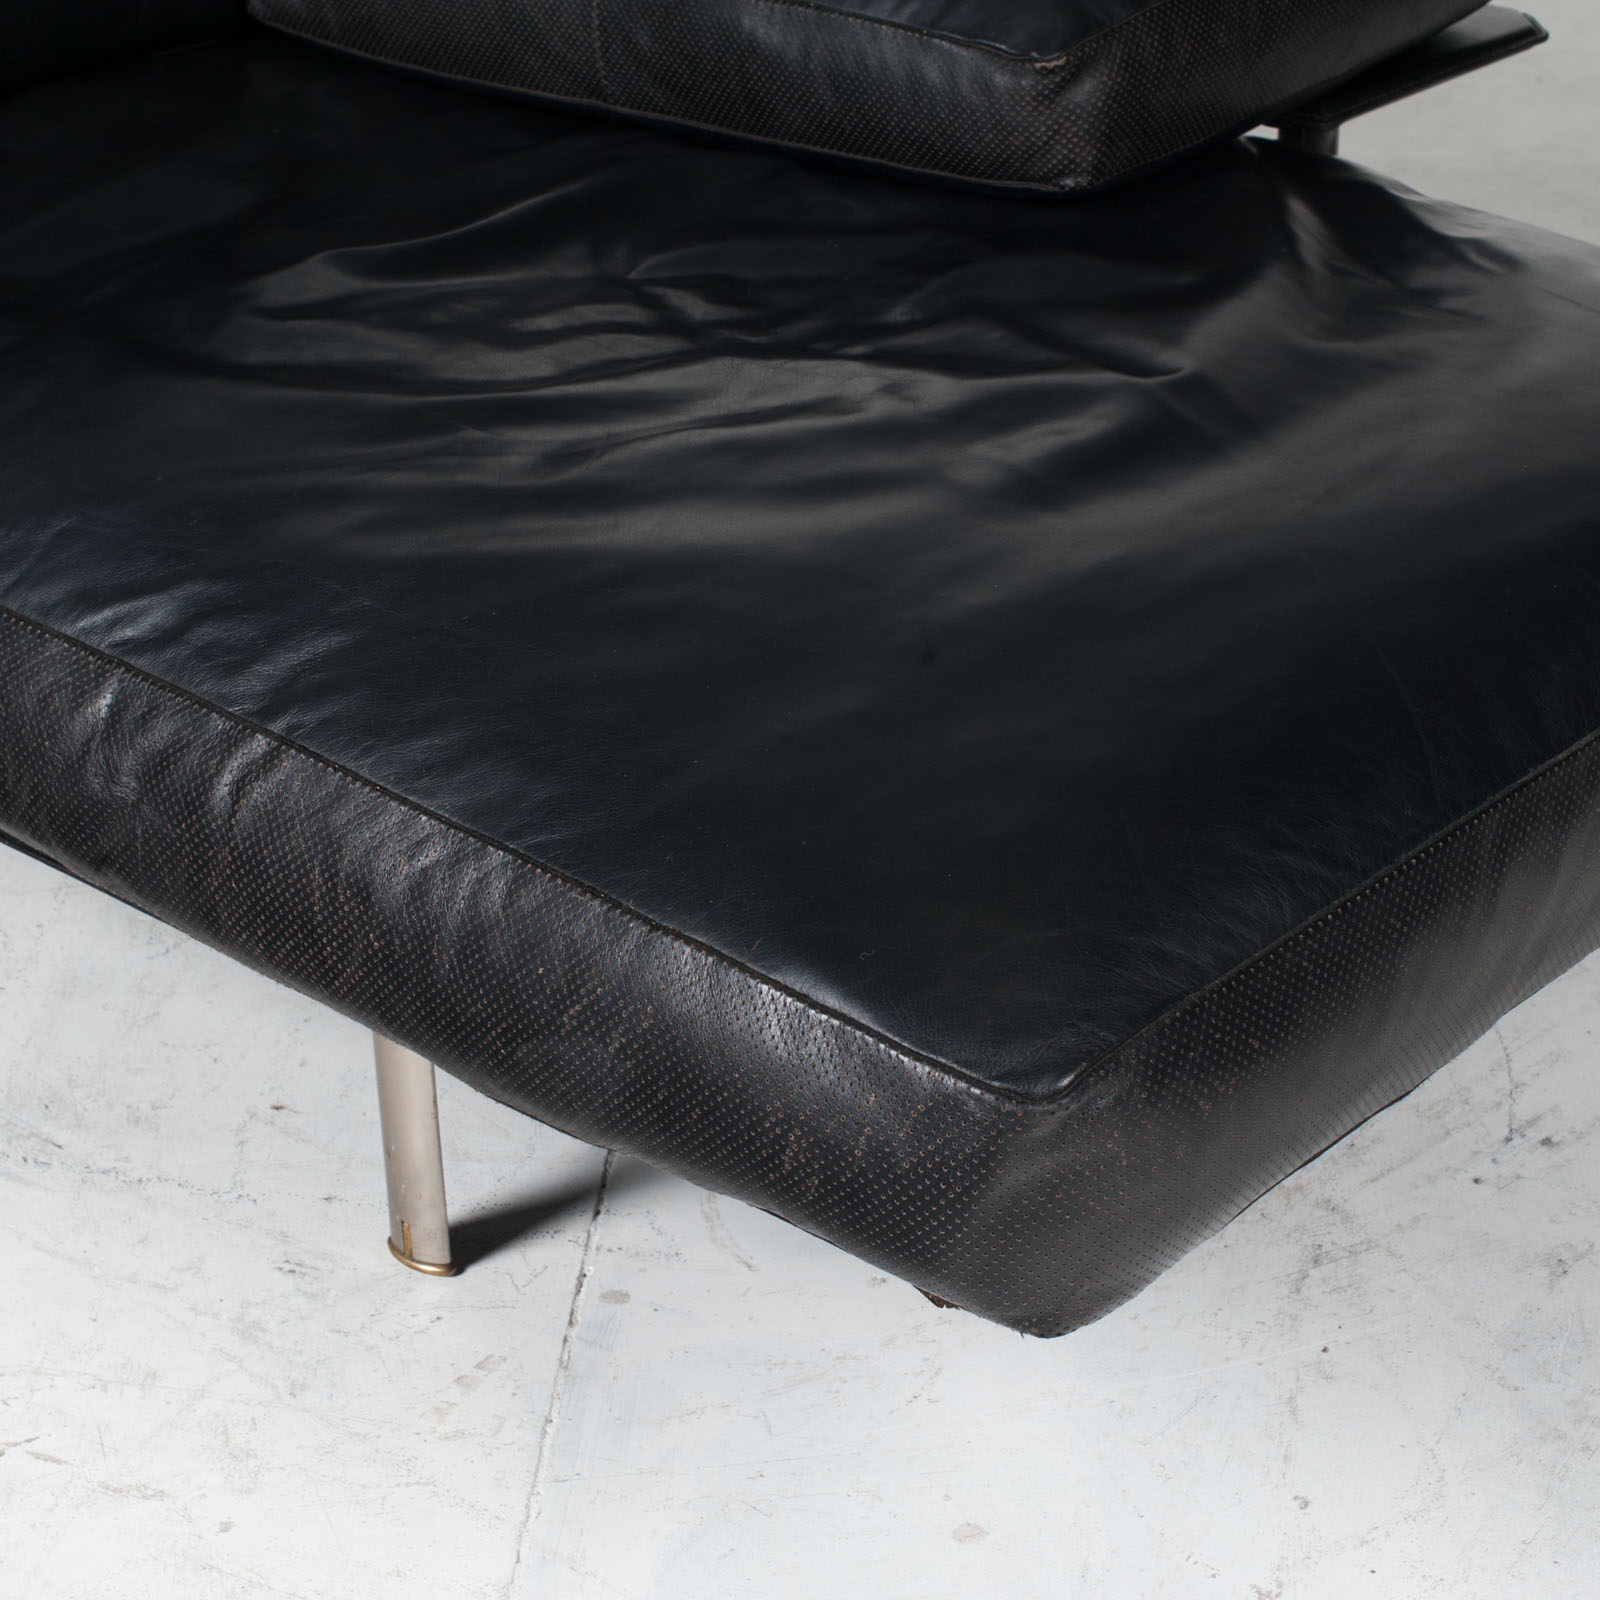 Model Diesis Chaise Lounge For B&b Italia By Antonio Citterio In Black Leather 1970s Italy 23